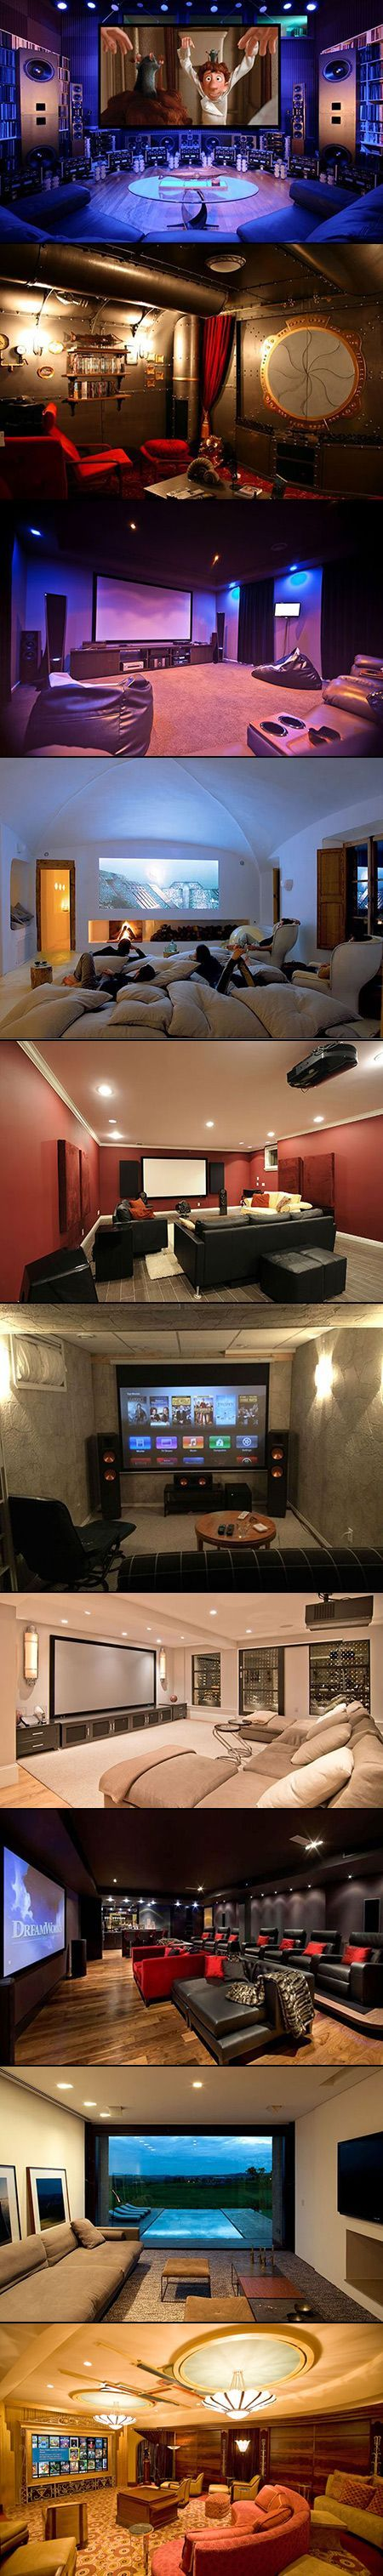 best 20+ home theater design ideas on pinterest | home theaters